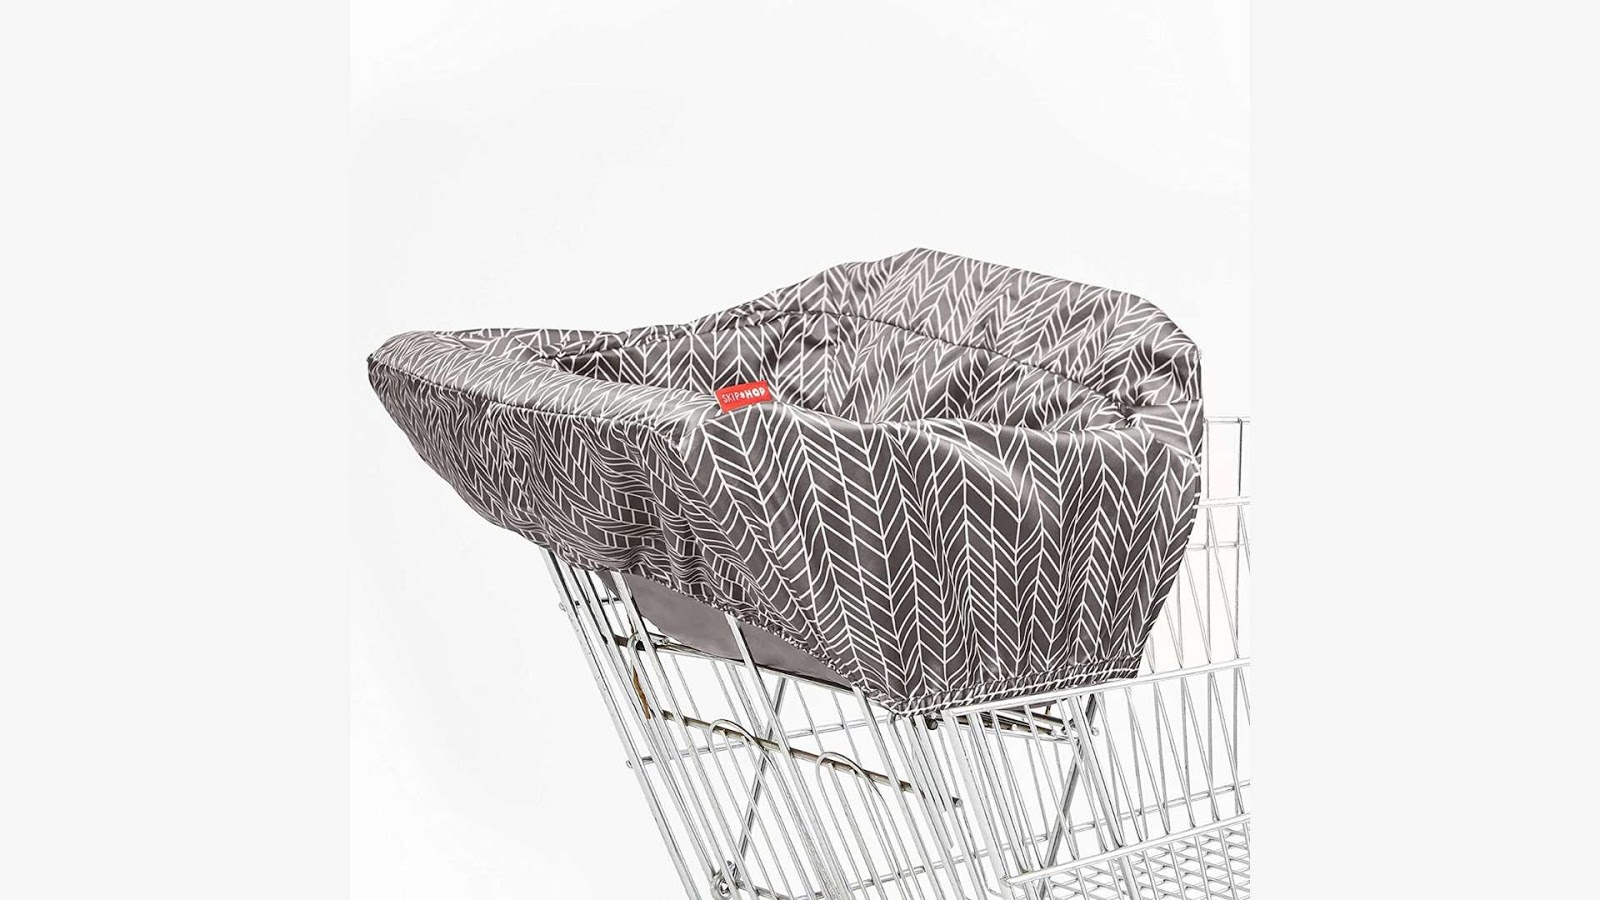 Best Shopping cart cover for newborn baby choice 3